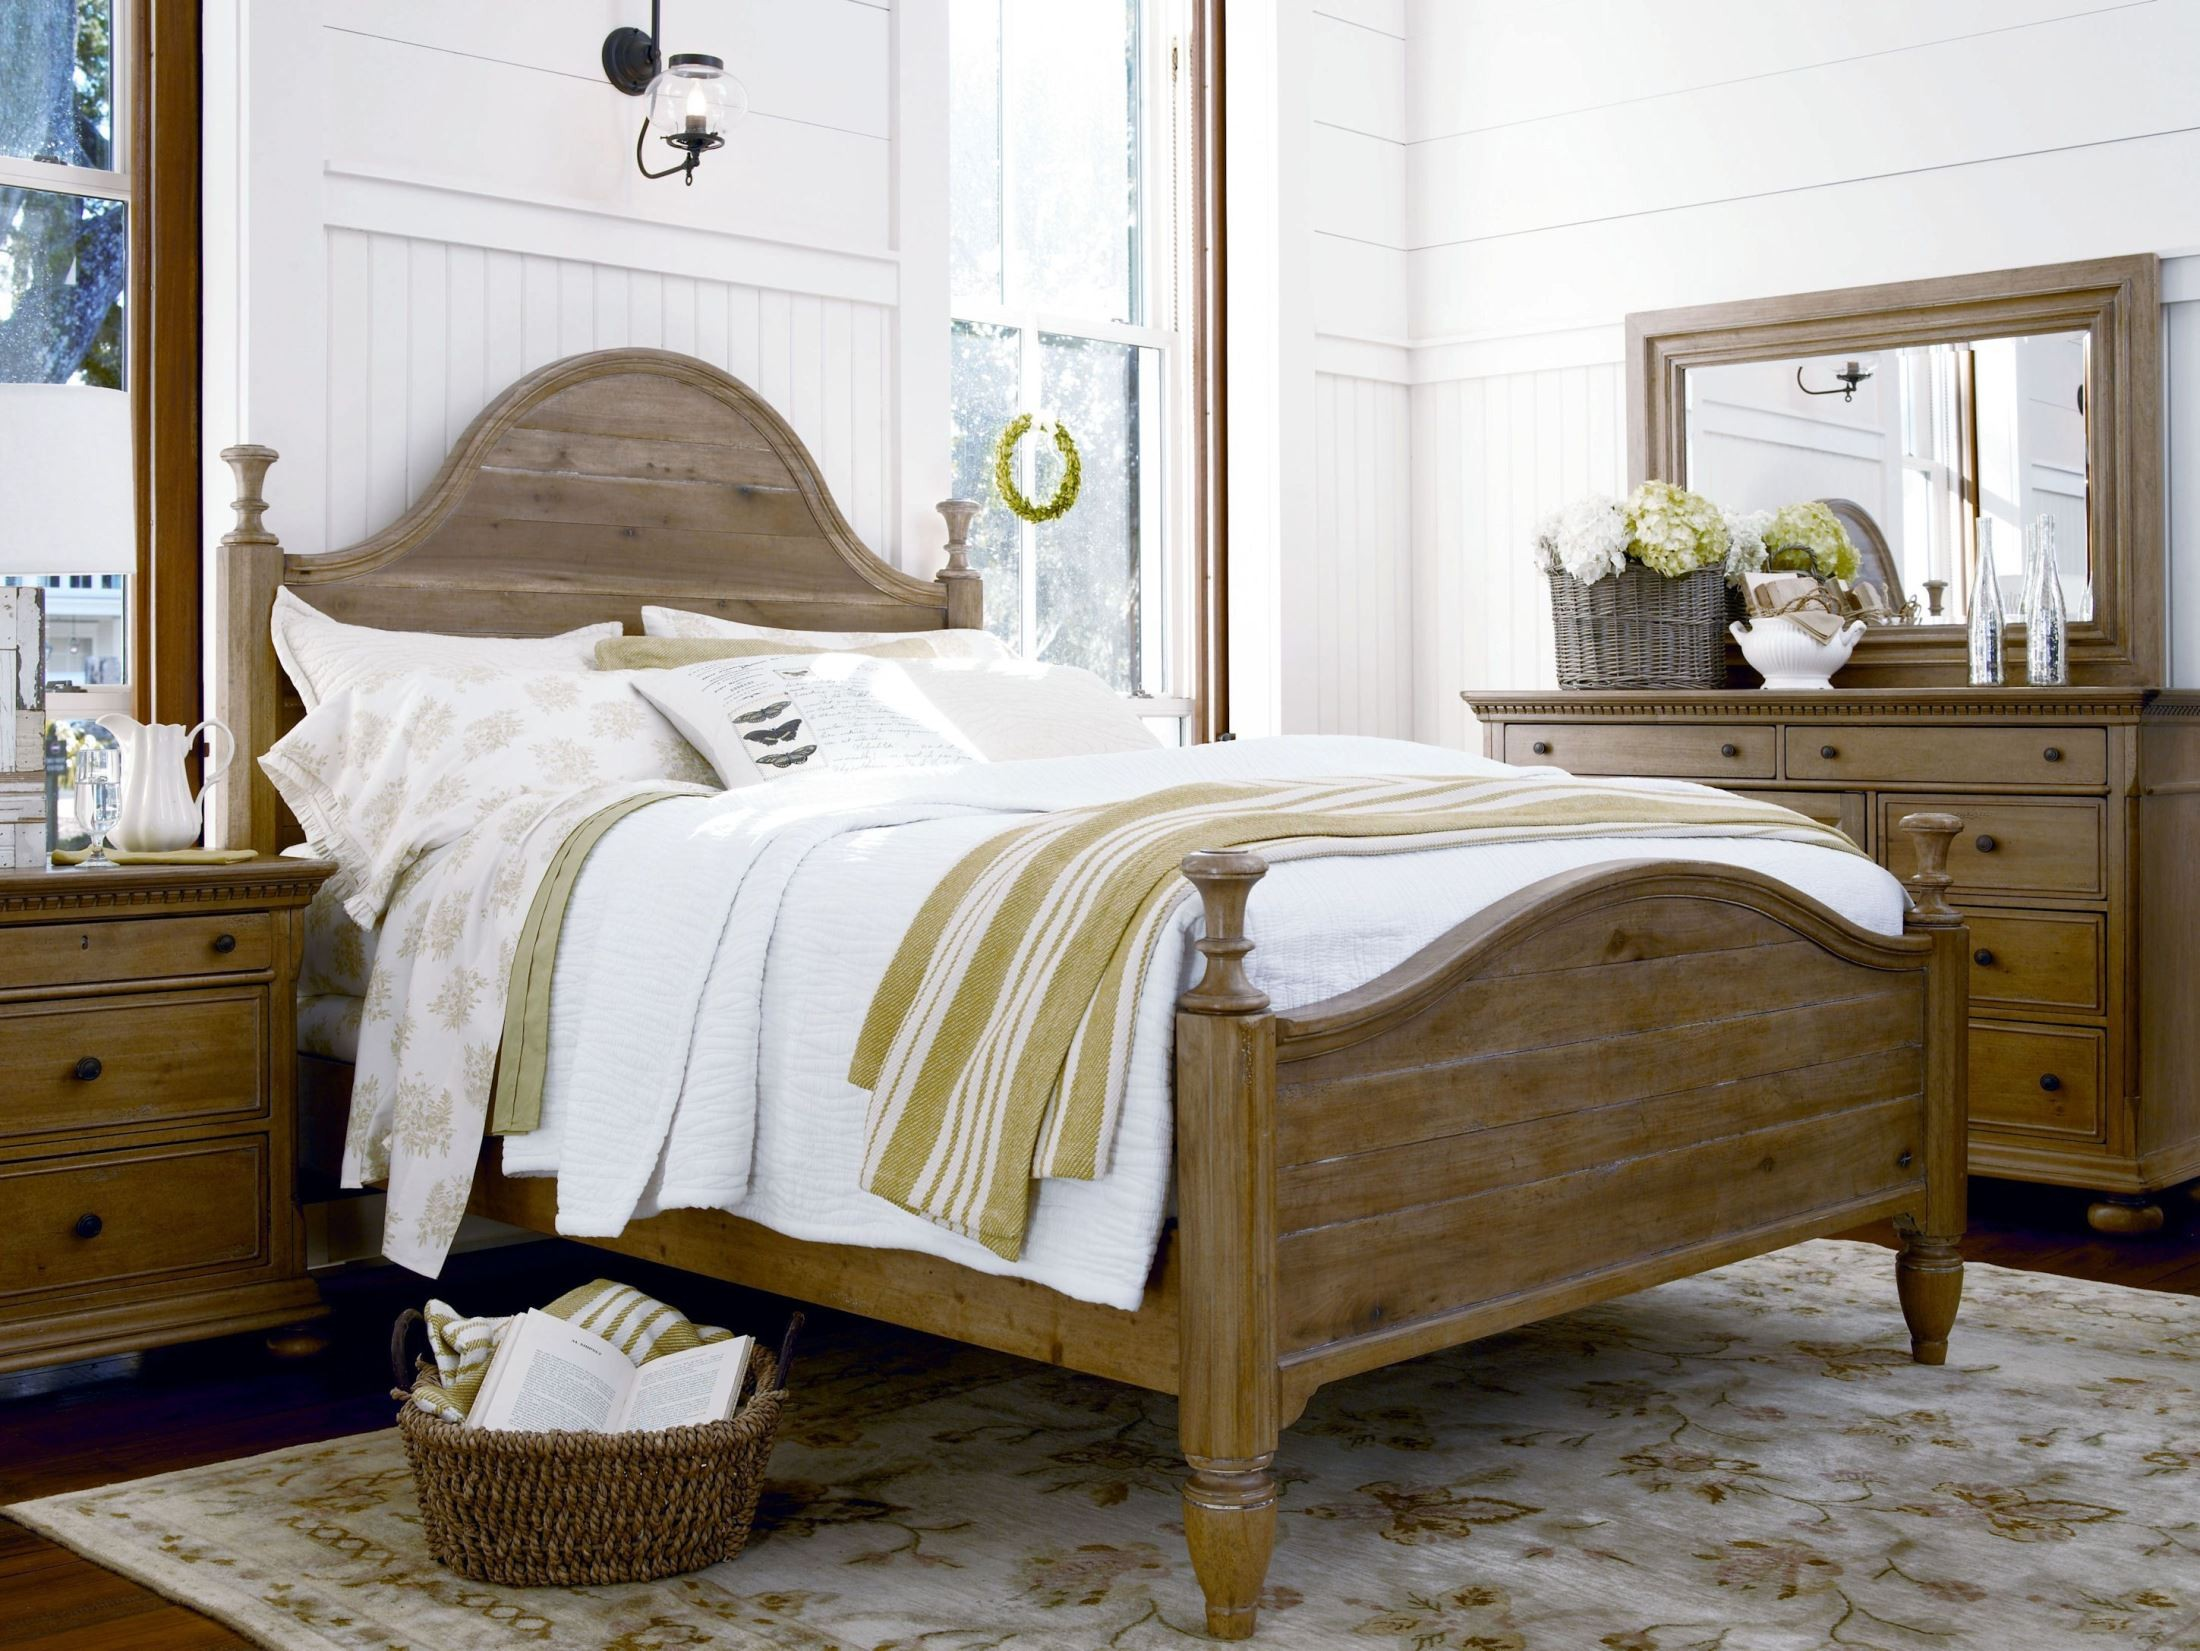 Down Home Oatmeal Bedroom Set From Paula Deen 192280b